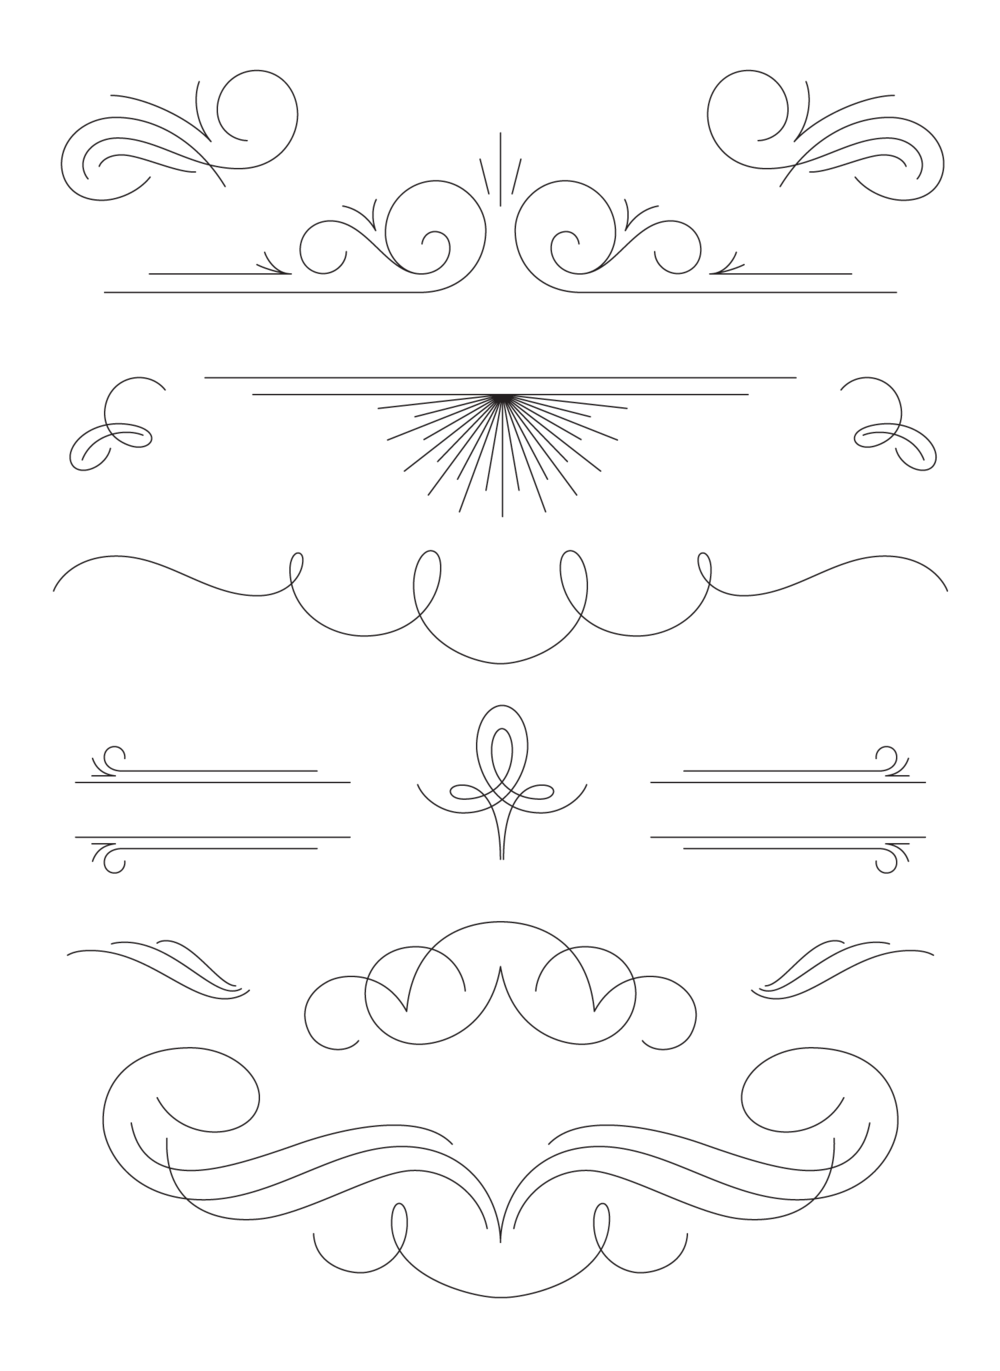 Just a few of the many flourishes included in the Fantastic Flourishes Collection.